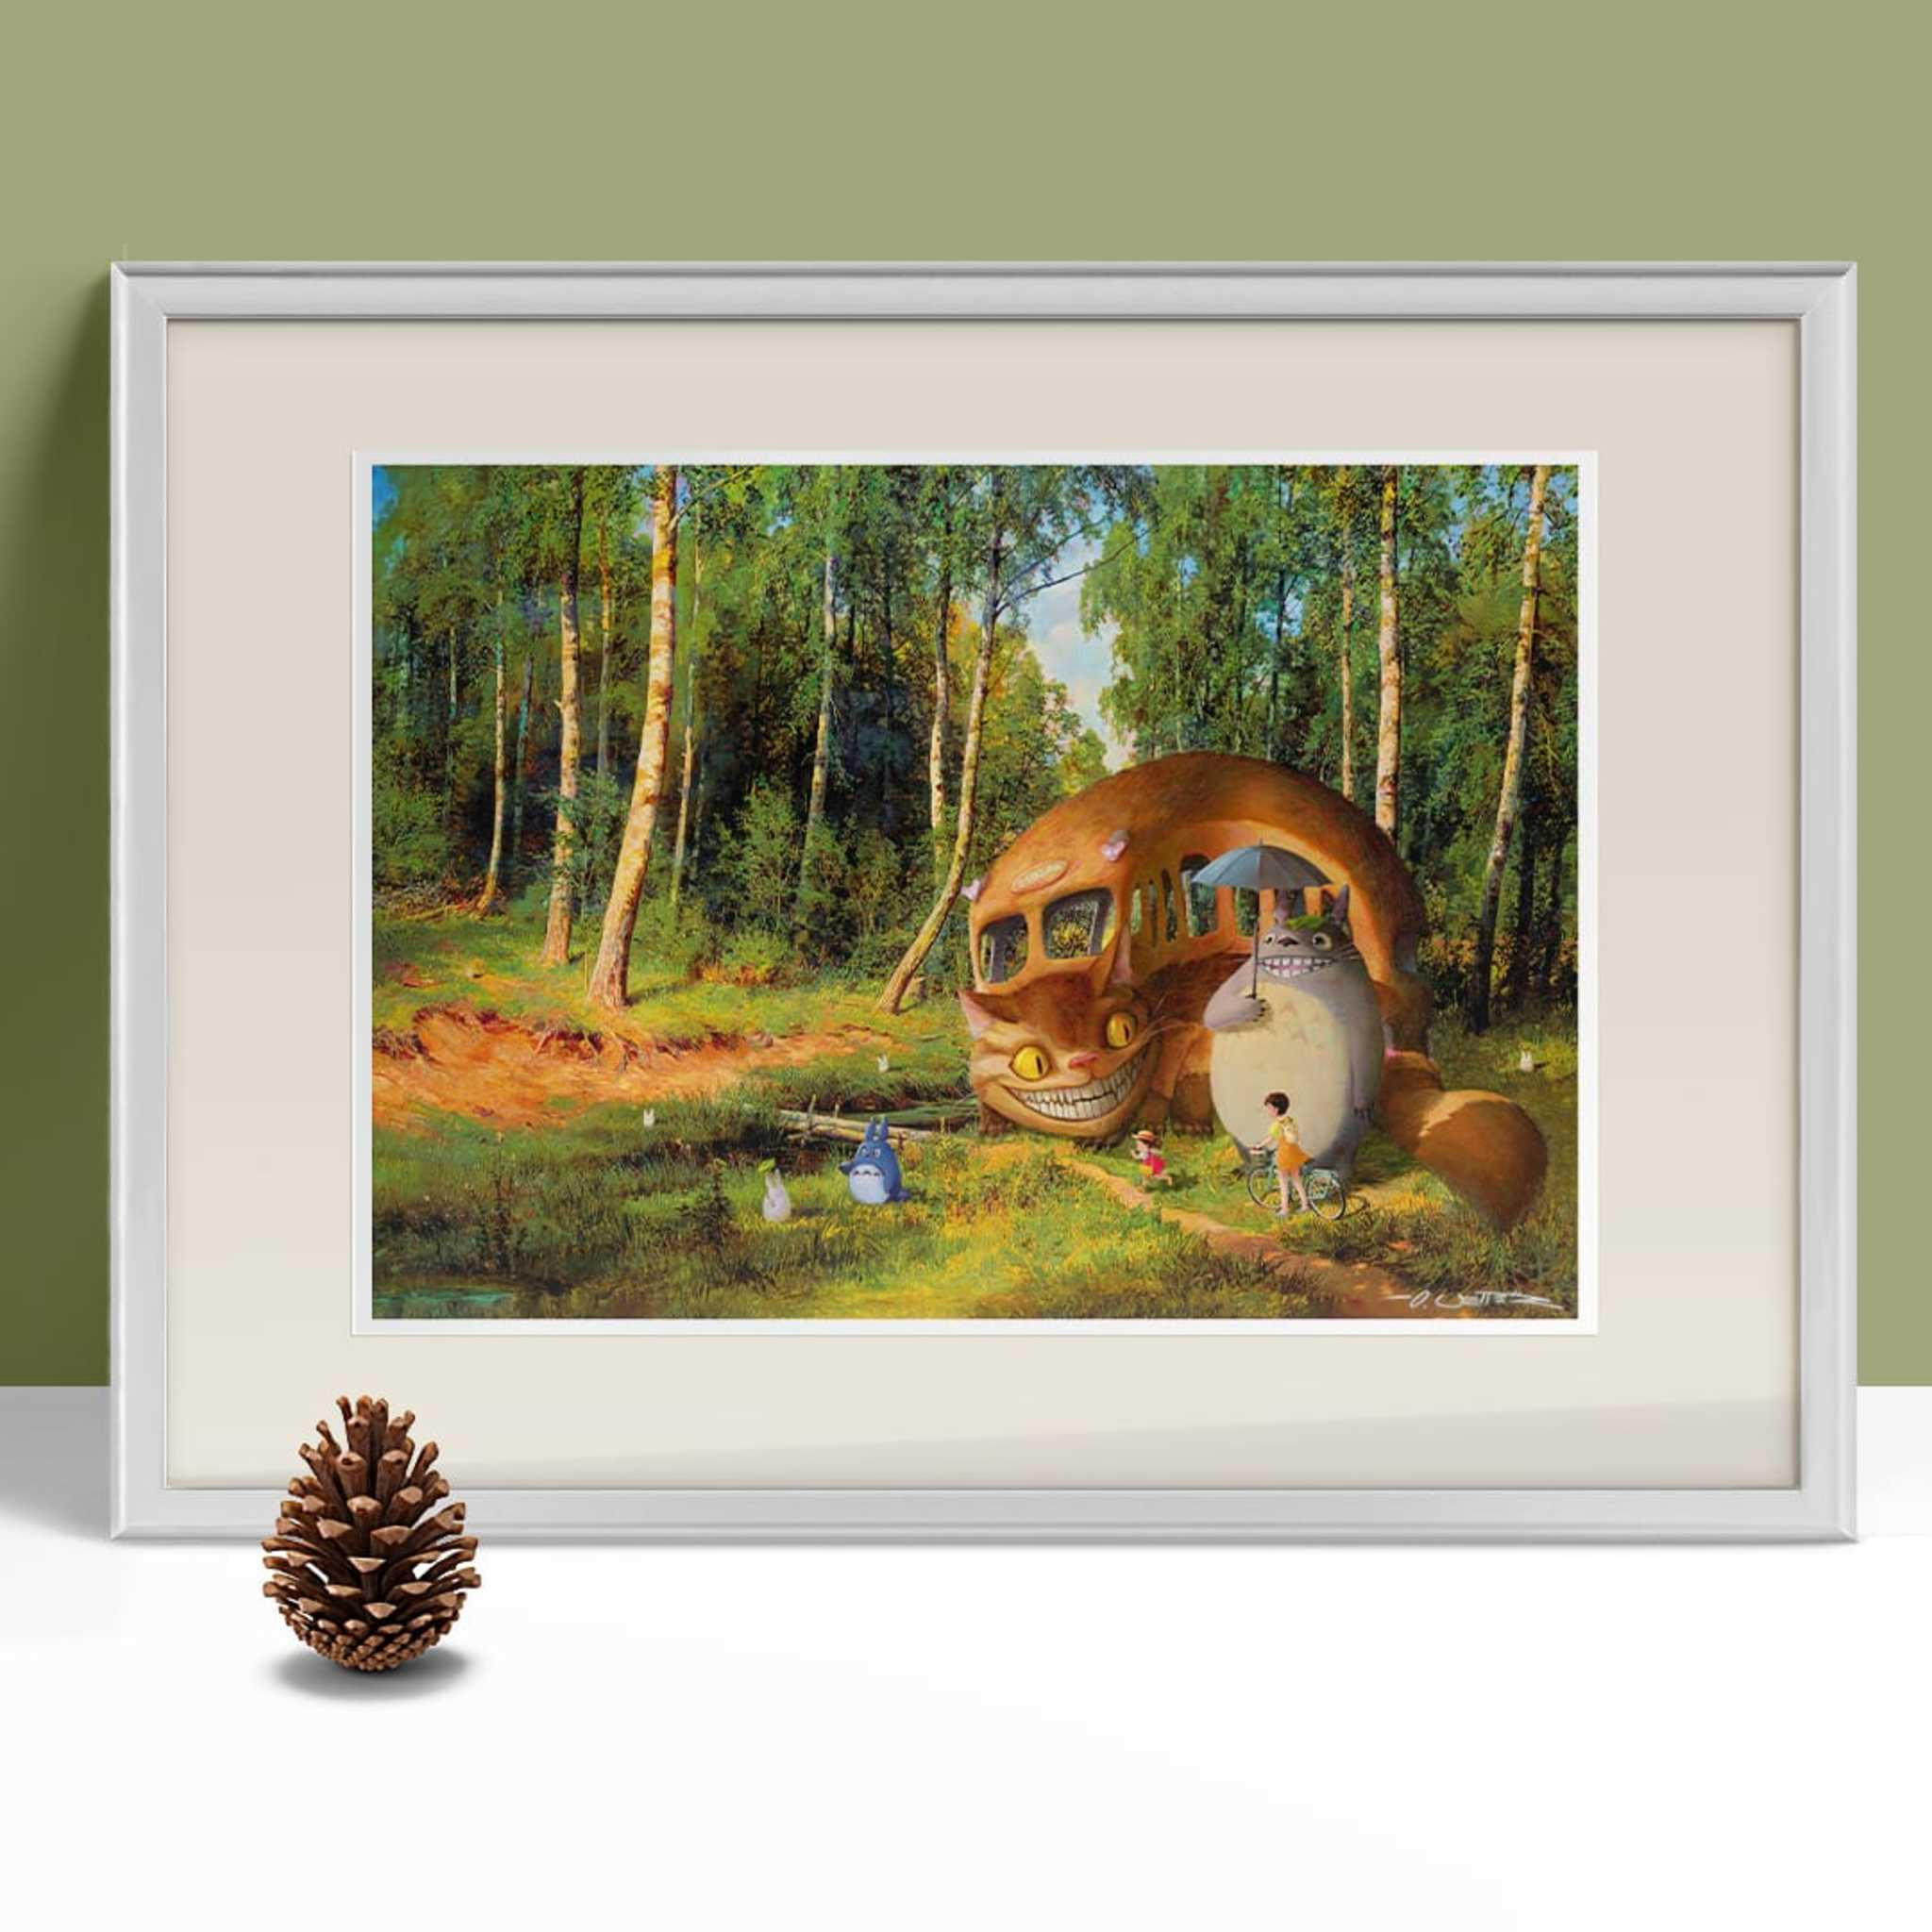 Totoro at the forest framed 1